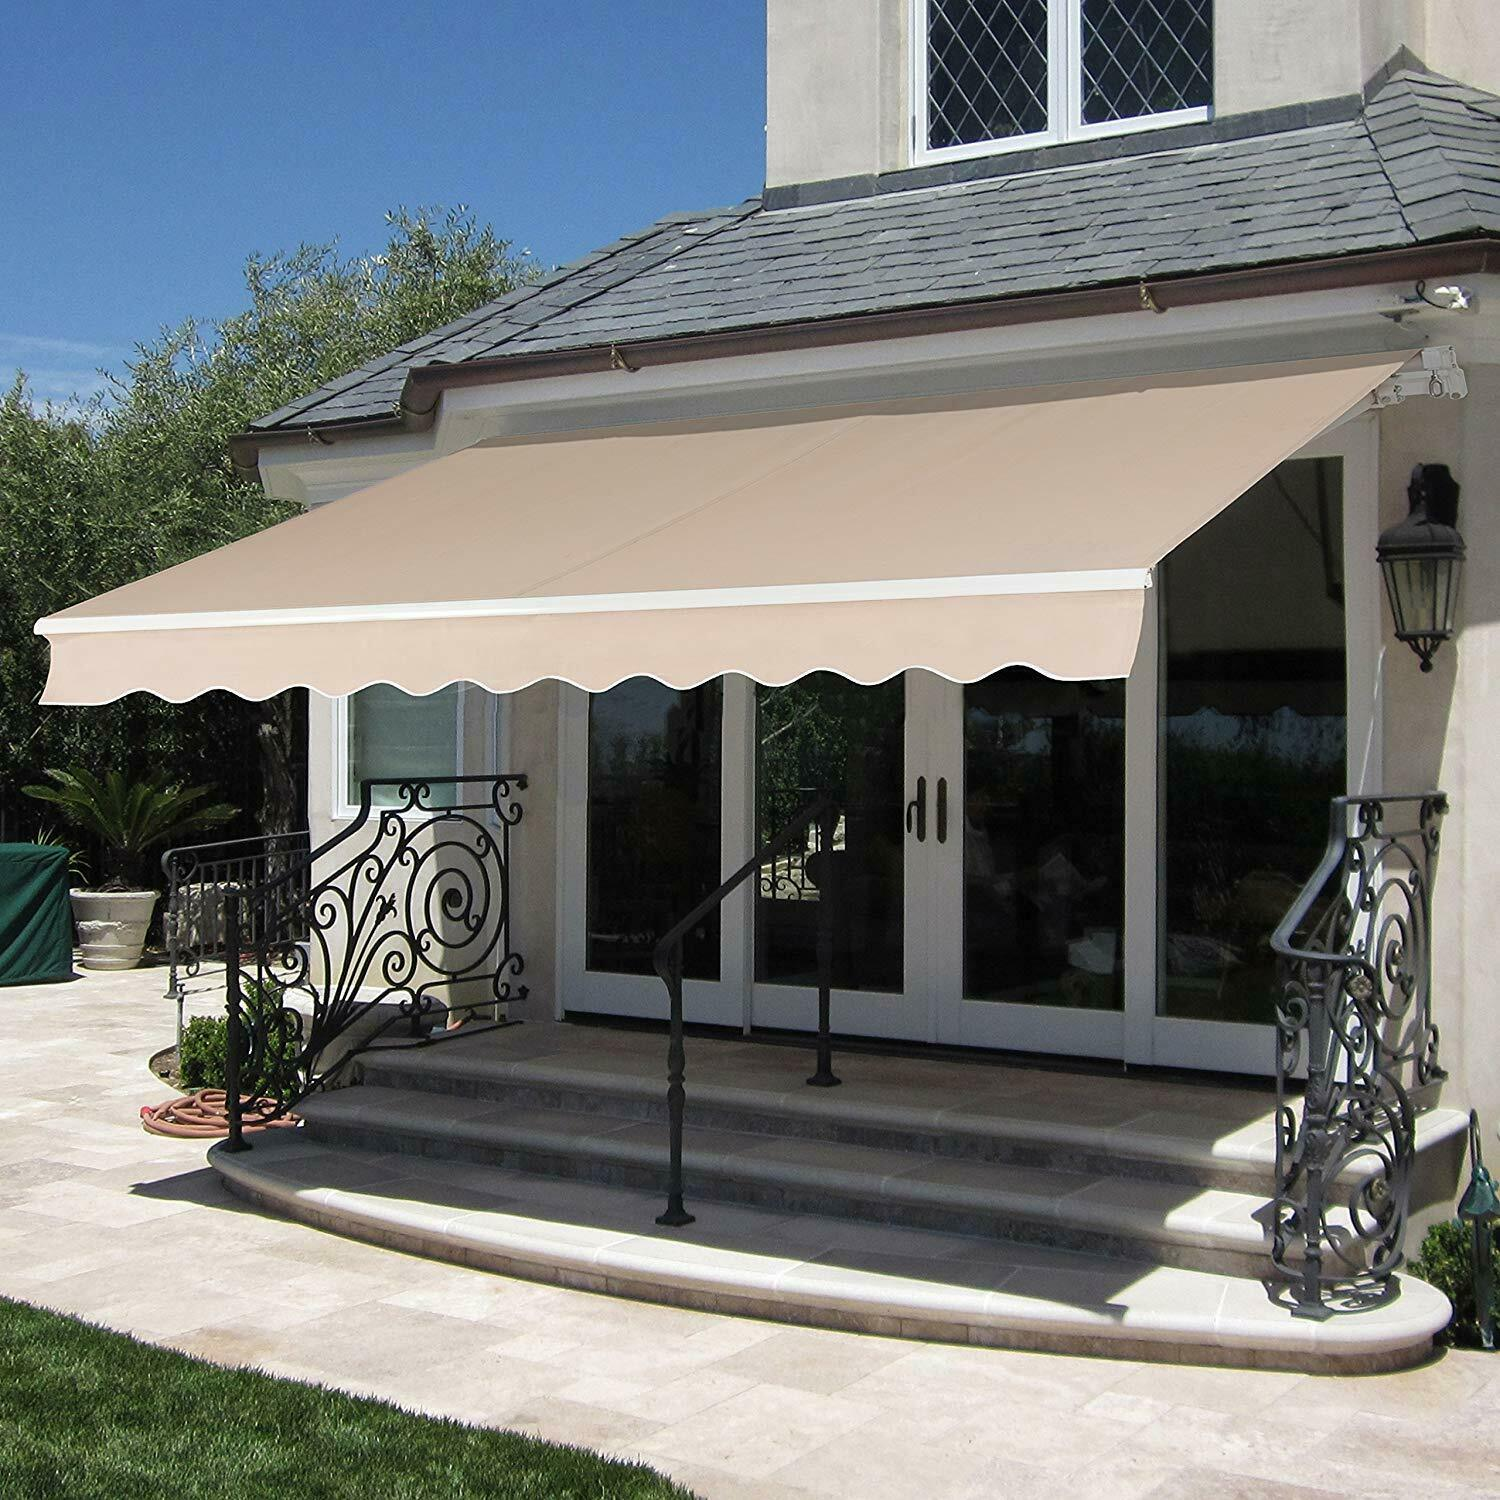 ALEKO Sunshade Half Cassette Retractable Patio Deck Awning 16x10 ft Burgundy